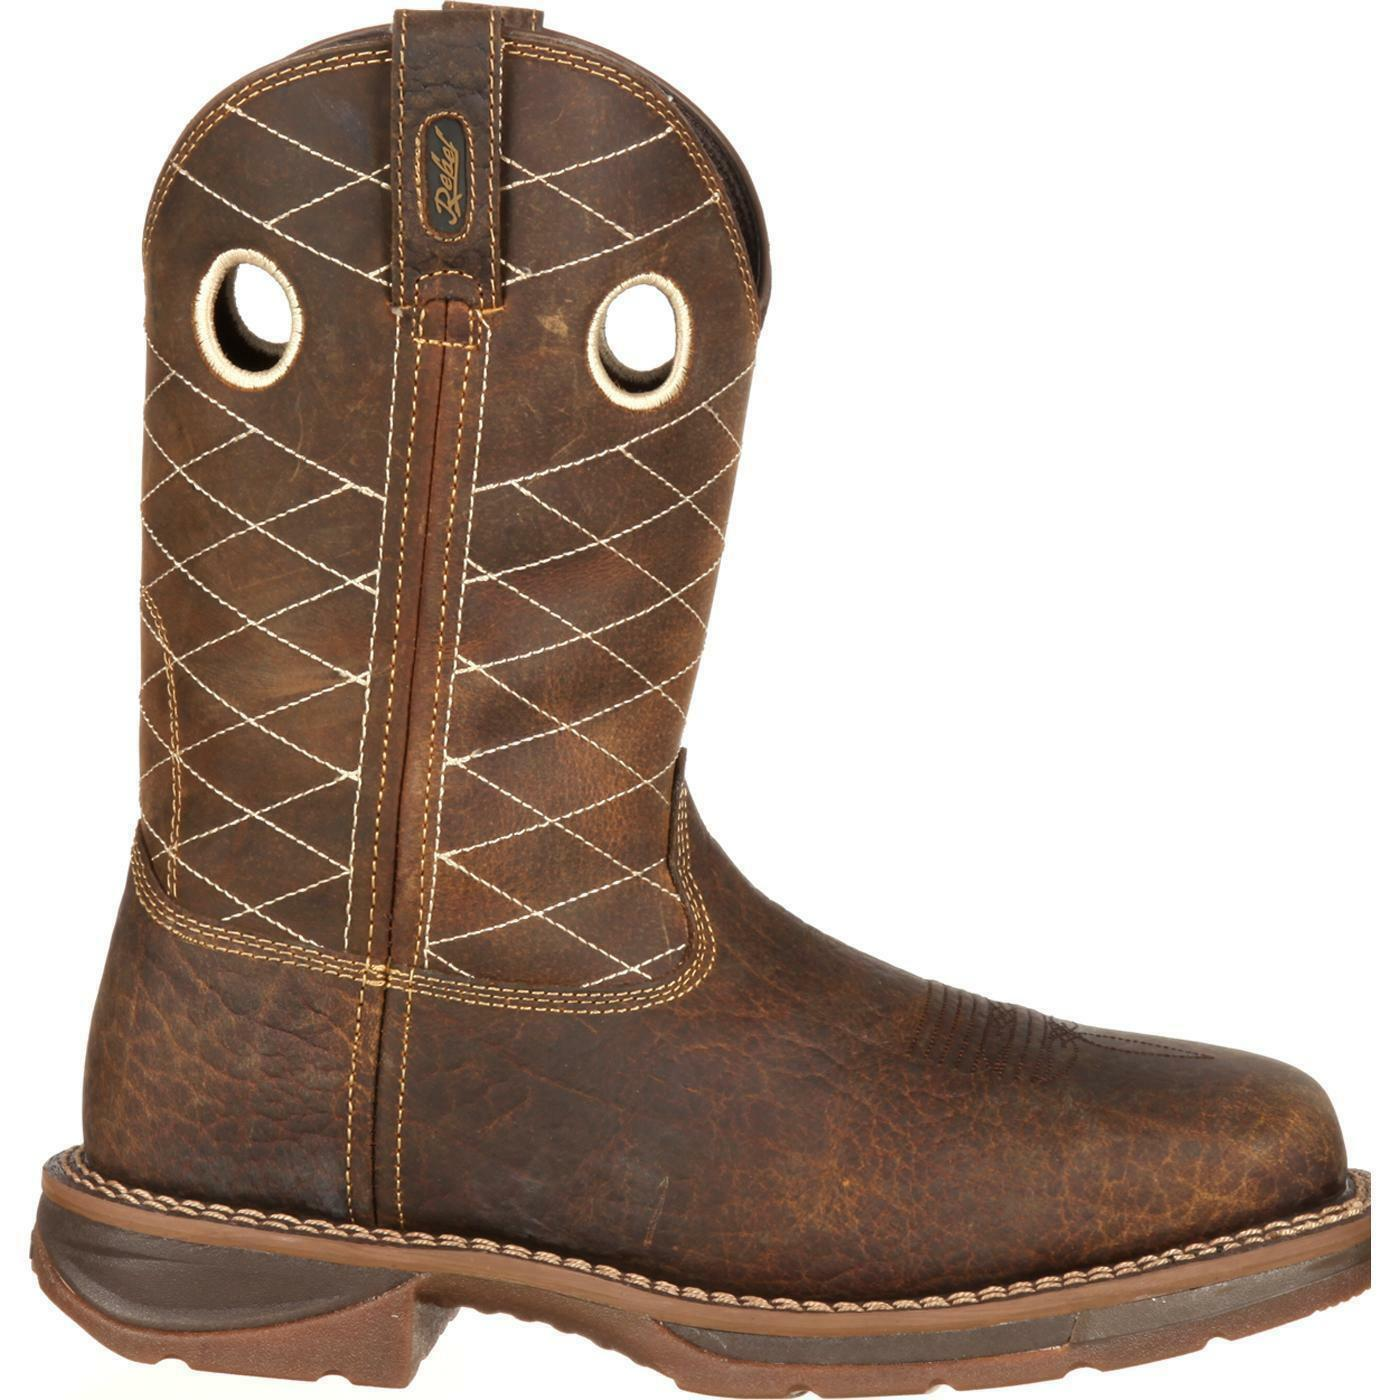 Durango Durango Durango DB4354 Workin' Rebel Square Safety Toe EH Rated Wide Calf Western Stiefel 9866c0